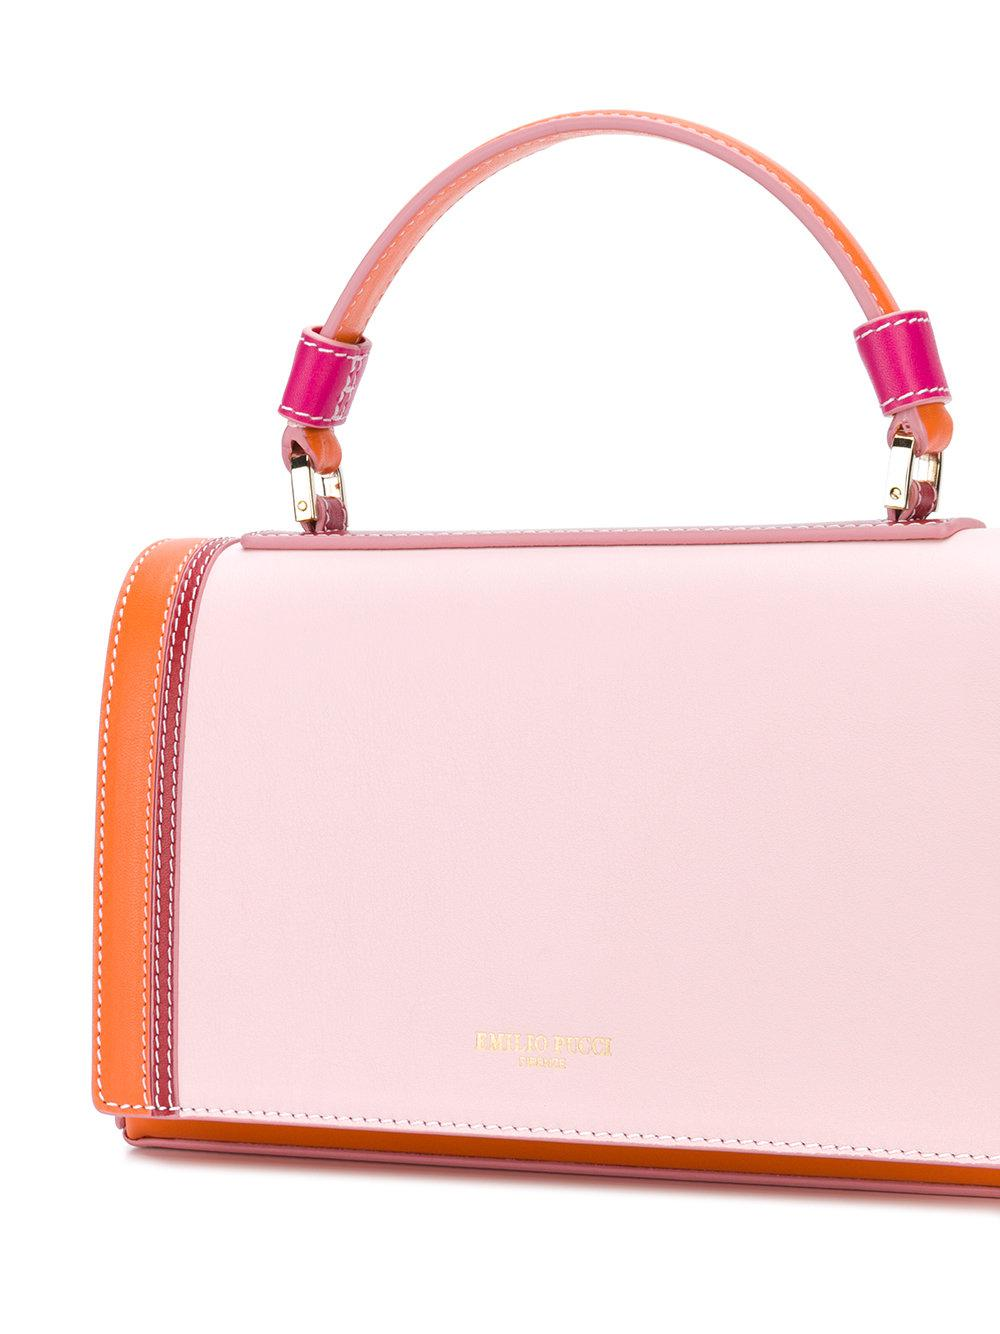 blockcolour flap tote bag - Pink & Purple Emilio Pucci GxAda